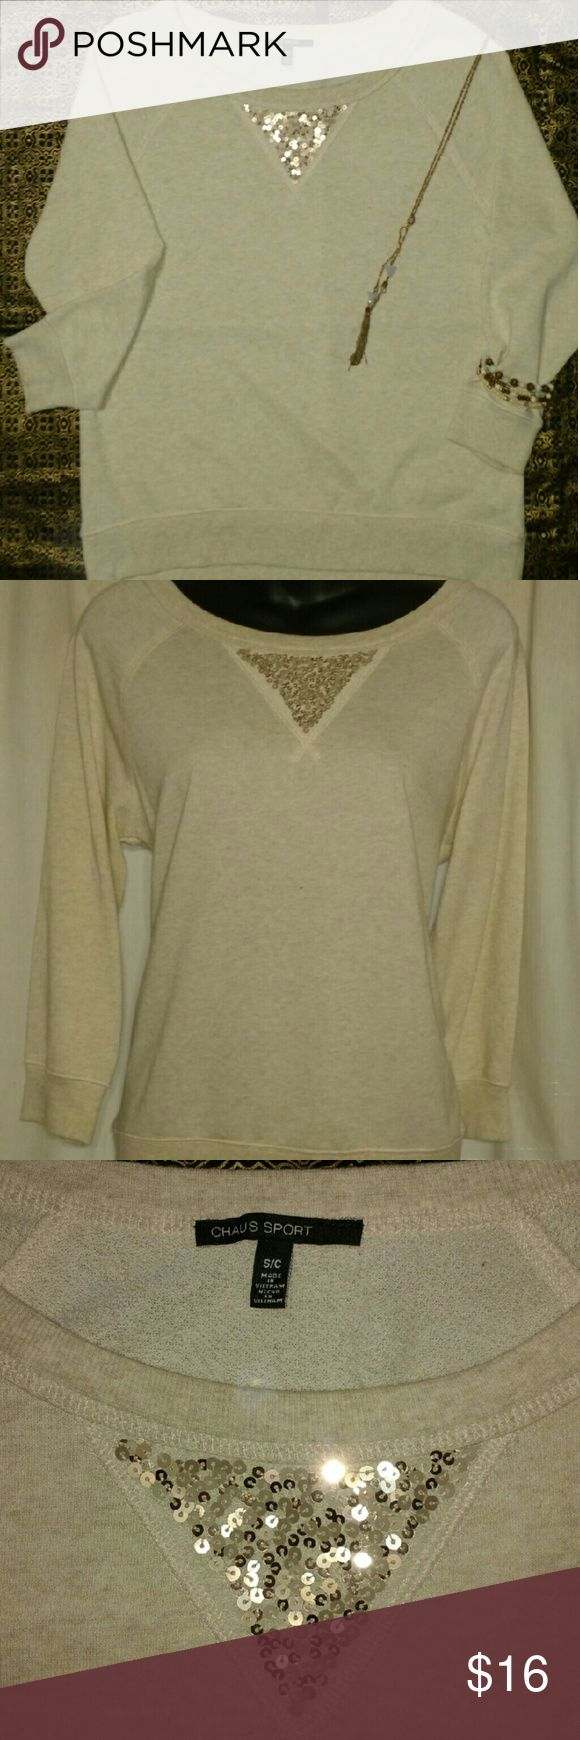 """*NWOT* Cream Golden Top *Cream Long Sleeve Top  *Triangular Shape with Gold Sequins   *Bateau Neckline   *Length 22""""     *Chest 19""""     *Sleeves 21""""  *Women's Size Small         *True to Size  *No Rips      *No Discoloration      *No Stains  *TRADE ALSO* Chaus Sport Tops Sweatshirts & Hoodies"""